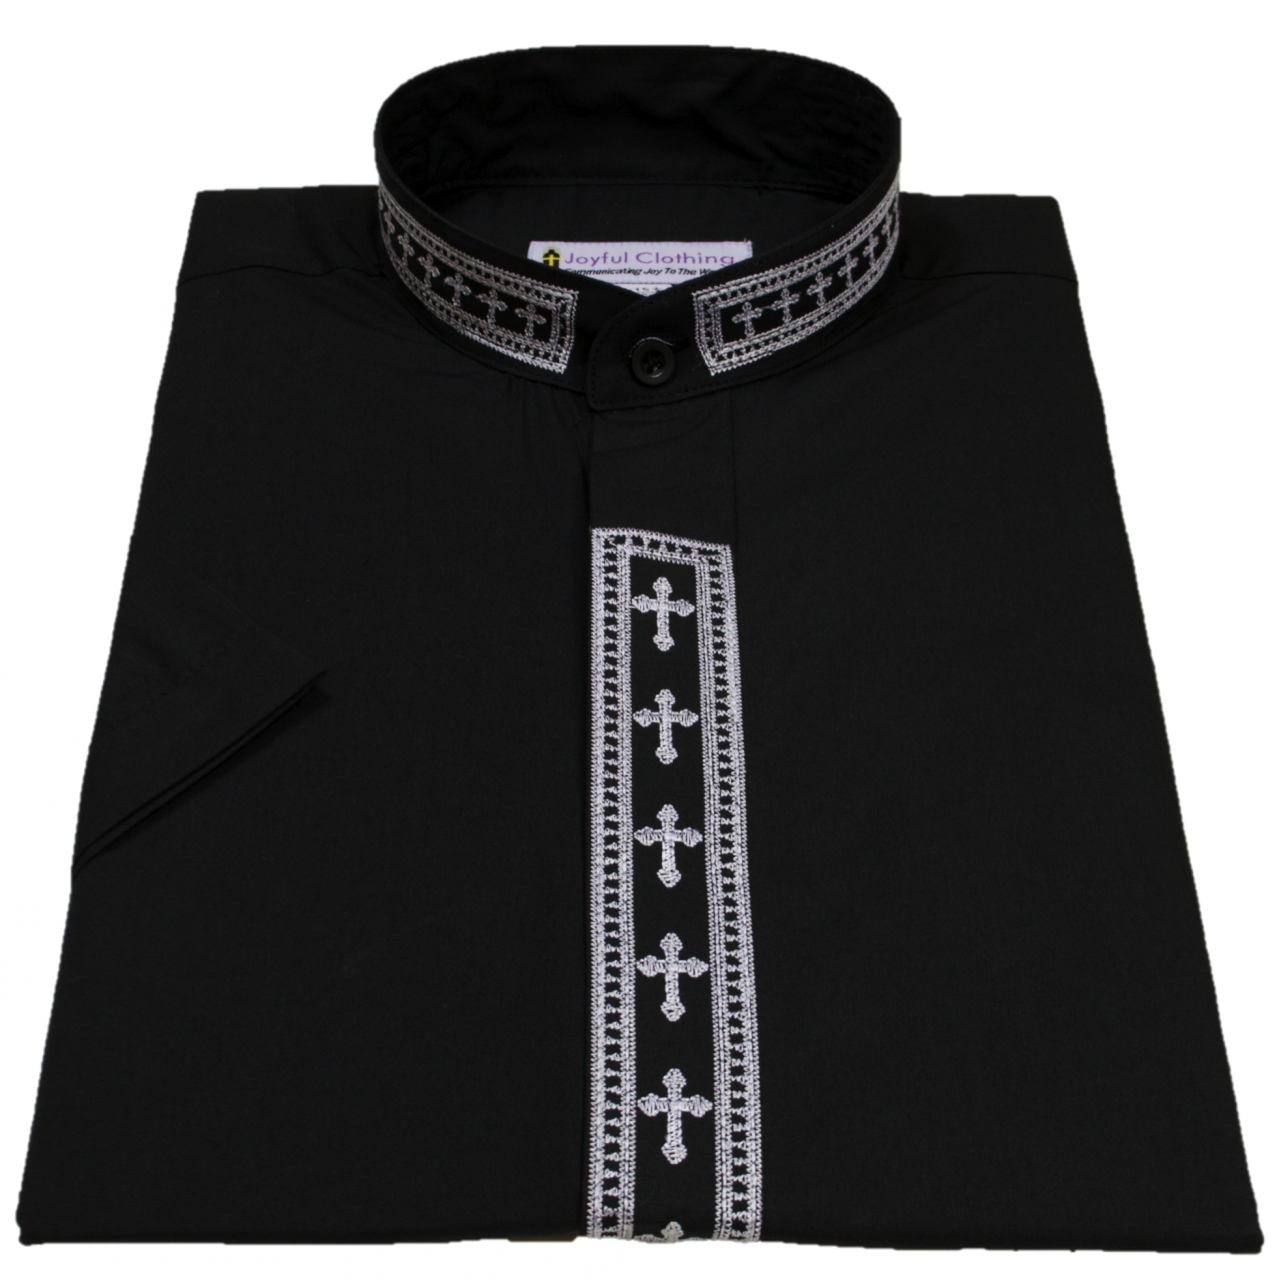 353. Men's Short-Sleeve Clergy Shirt With Fine Embroidery - Black/White